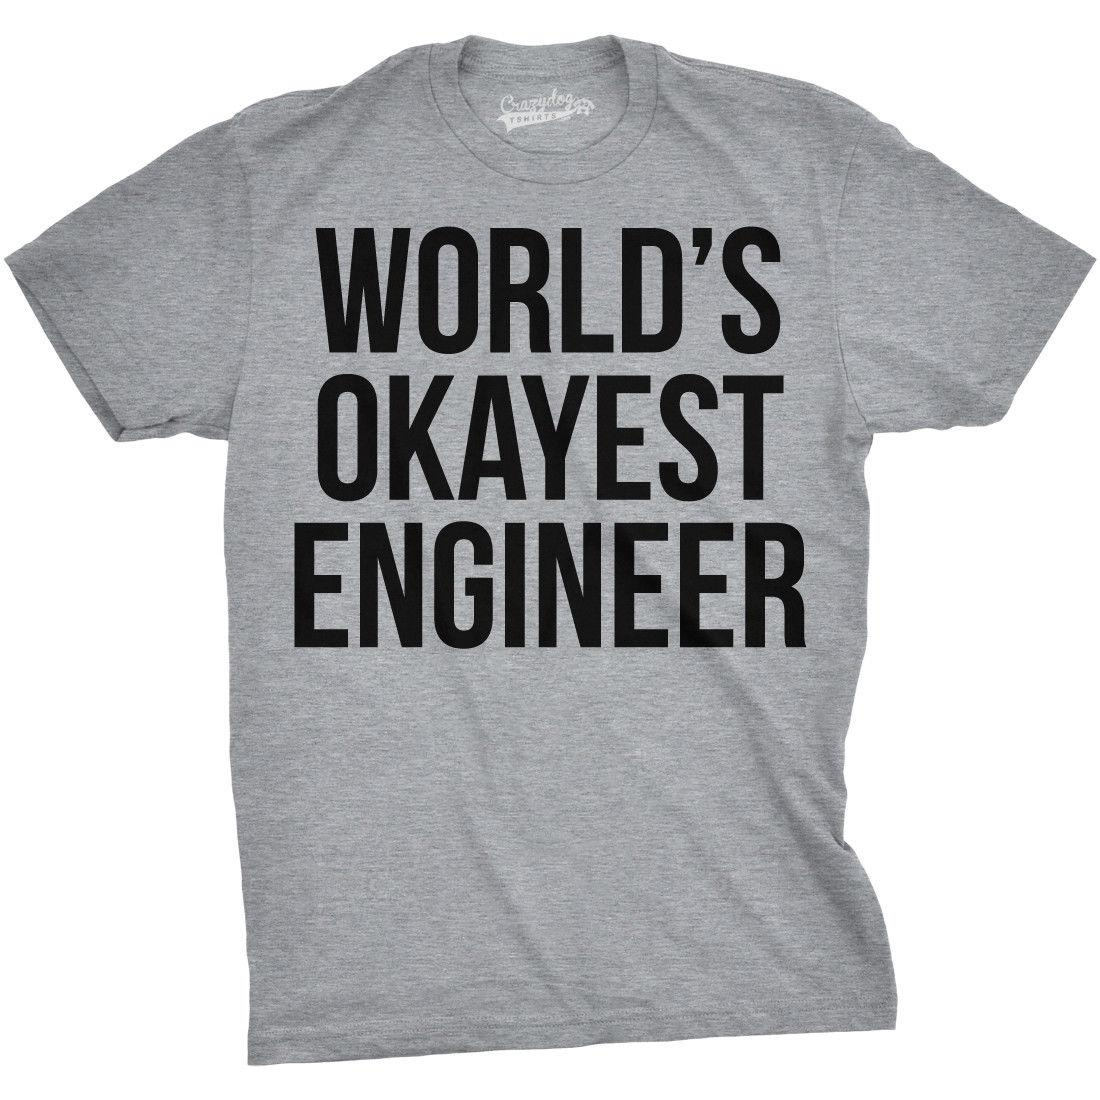 90e9979c World'S Okayest Engineer T Shirt Funny Sarcastic Shop Tech Career Tee 2018  New Short Sleeve Men T Shirt 100% Cotton Family Top Tee Cool Sweatshirts  Online ...